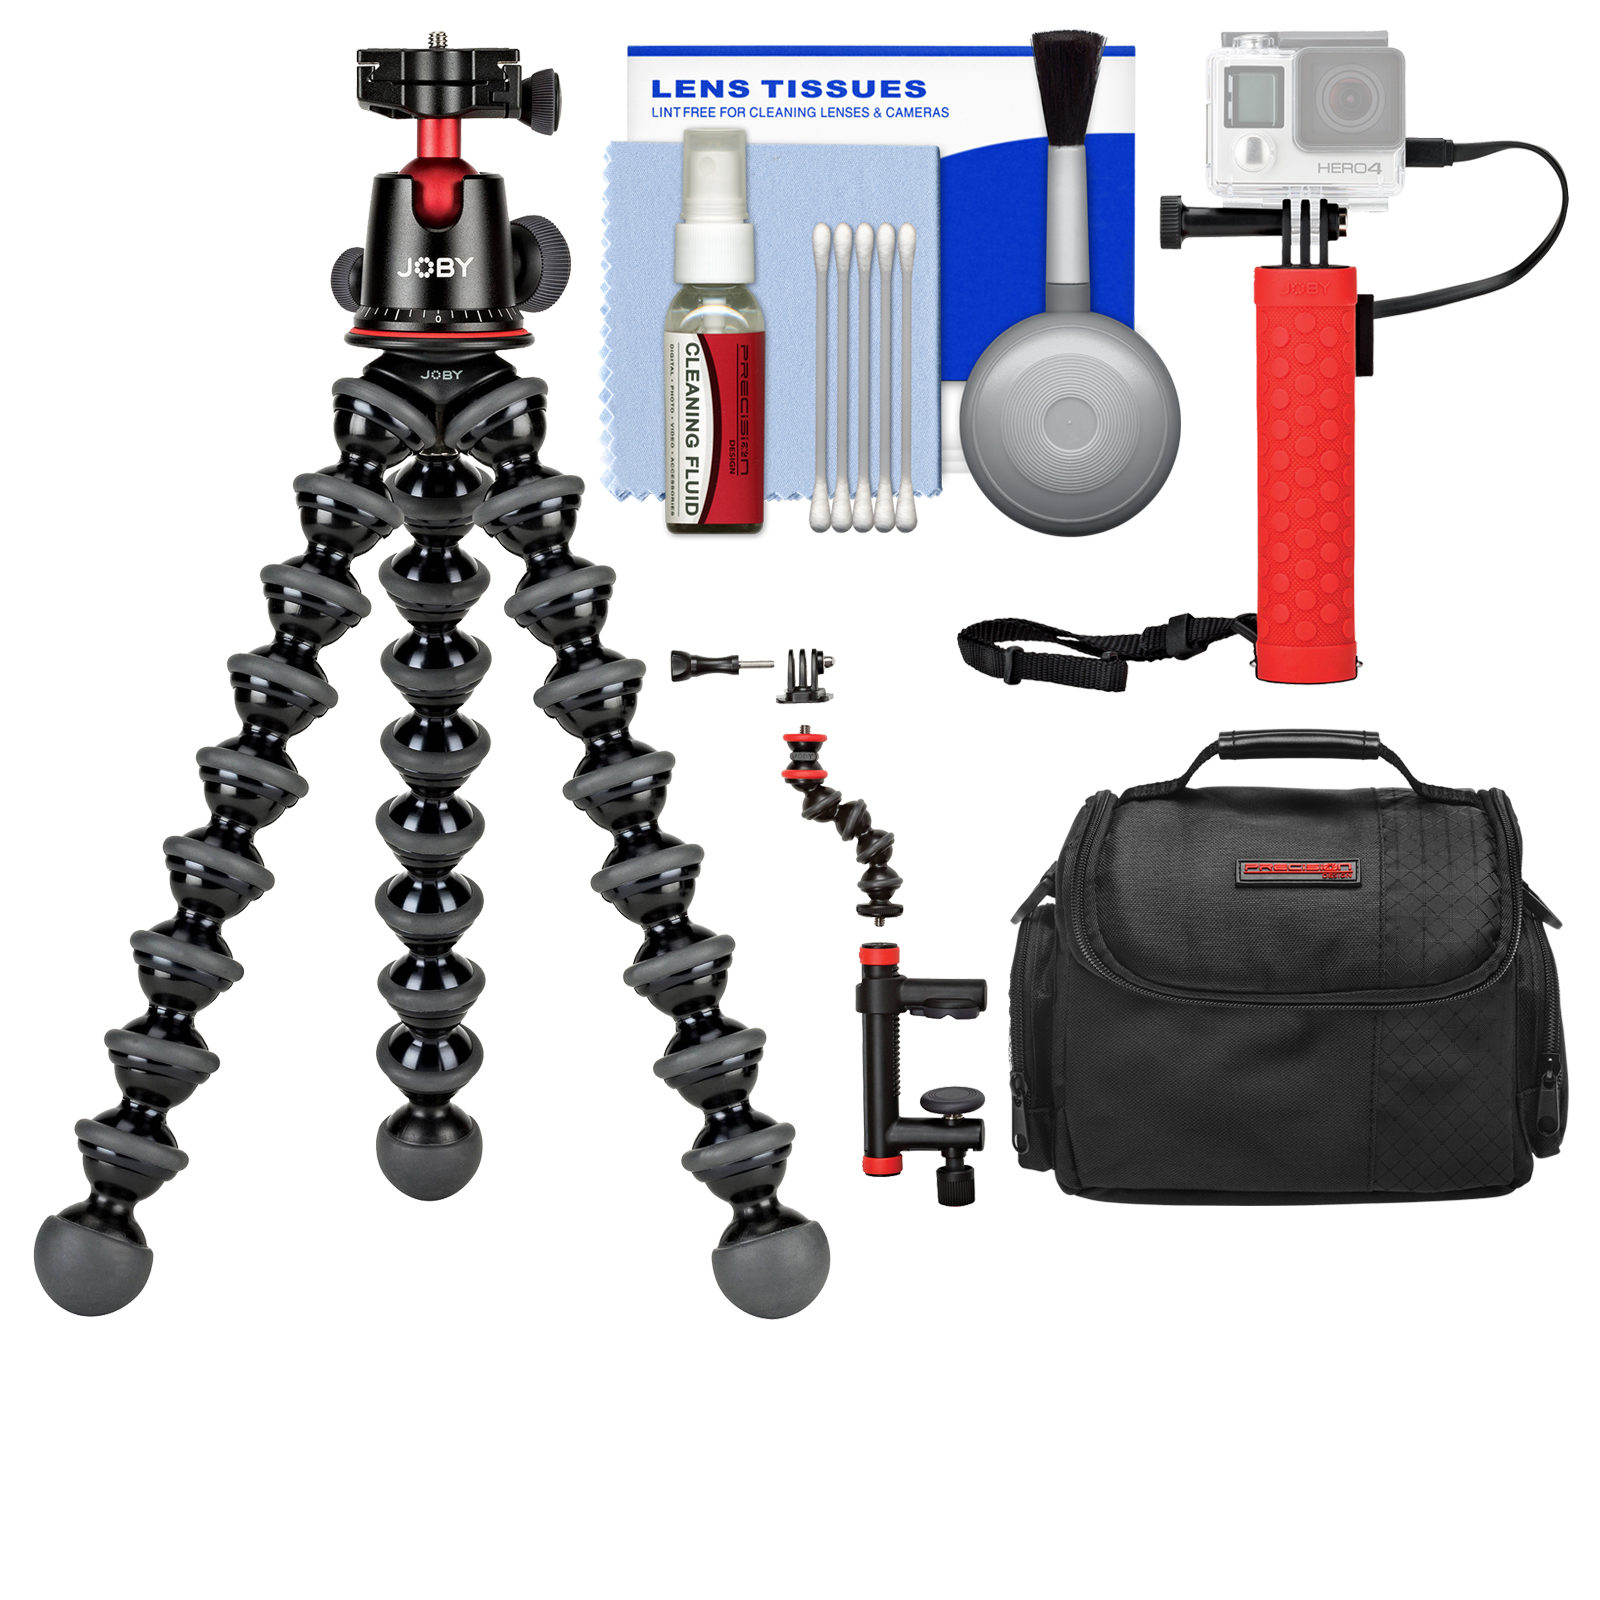 Joby GorillaPod 5K Flexible Tripod with Ball Head Kit + Case + Hand Grip + Action Camera Clamp + Kit